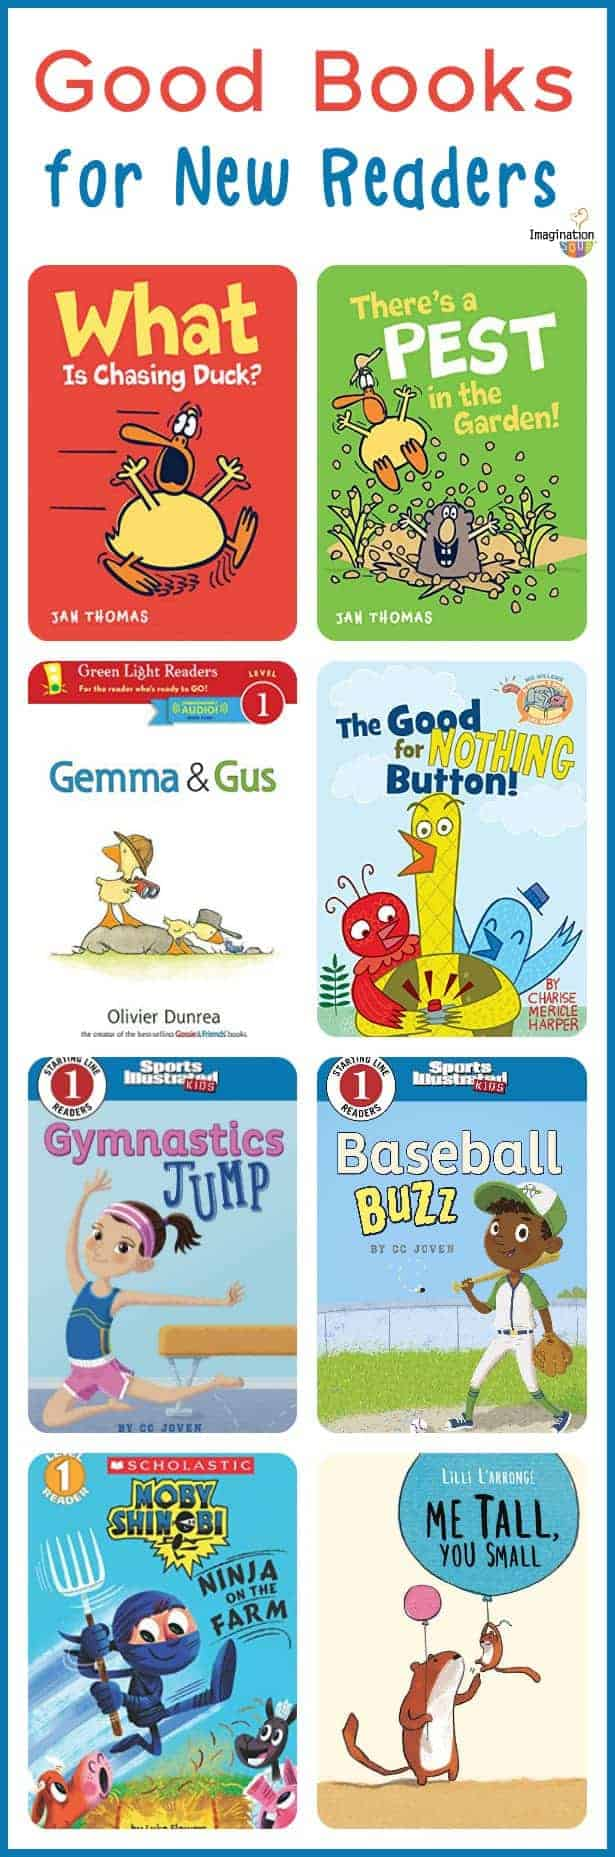 what is a good book choice for a new reader? Try one of these!